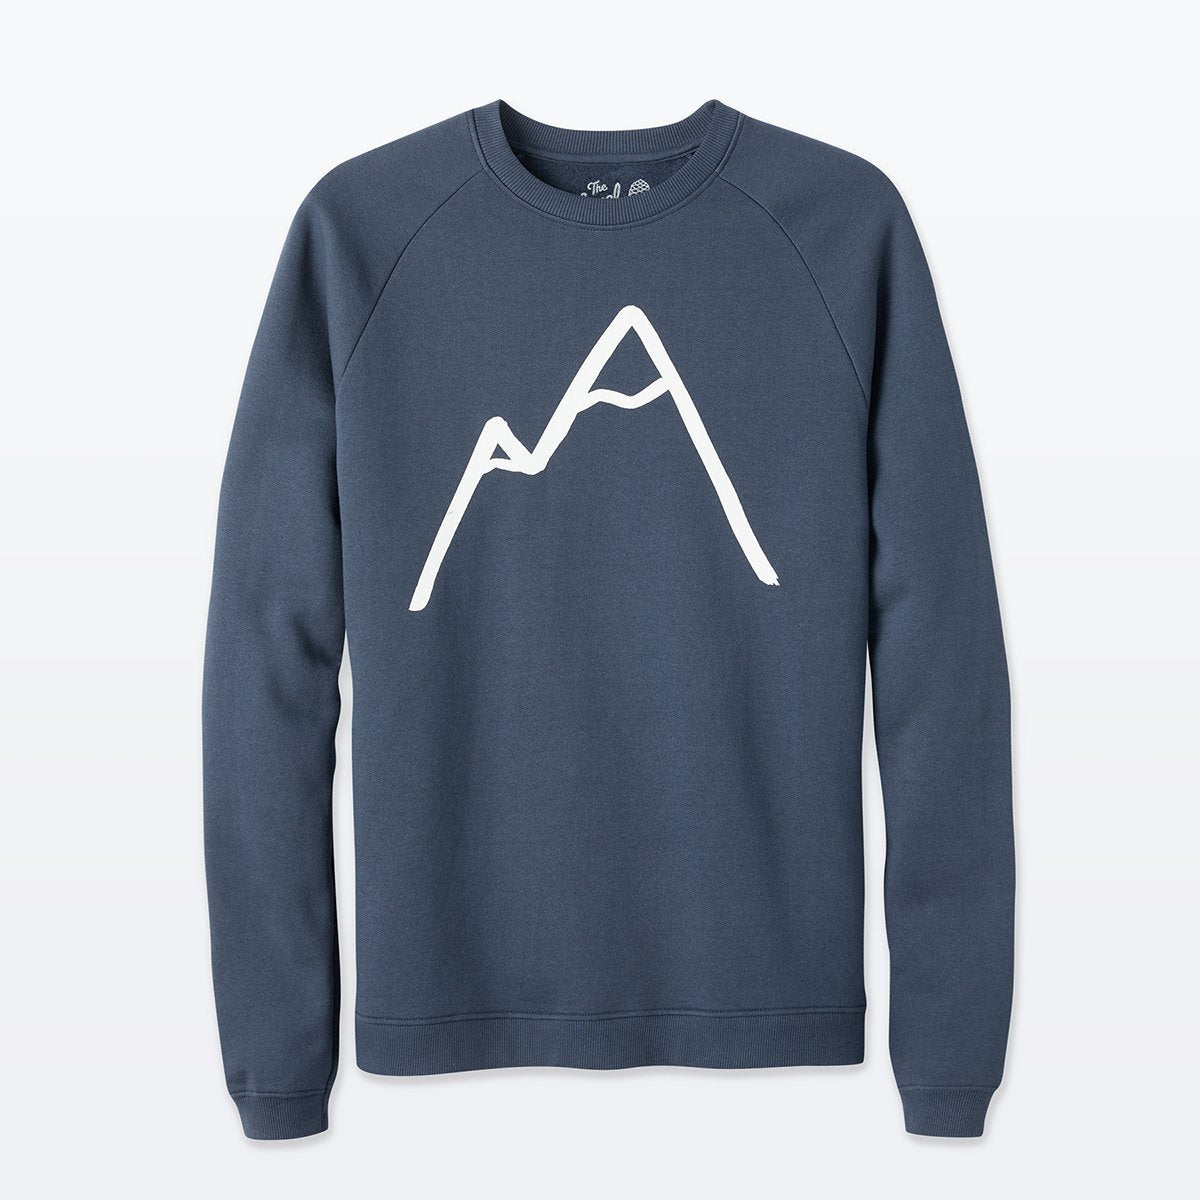 The Level Collective | Simple Mountain Sweatshirt | Cotton Jumper | Navy